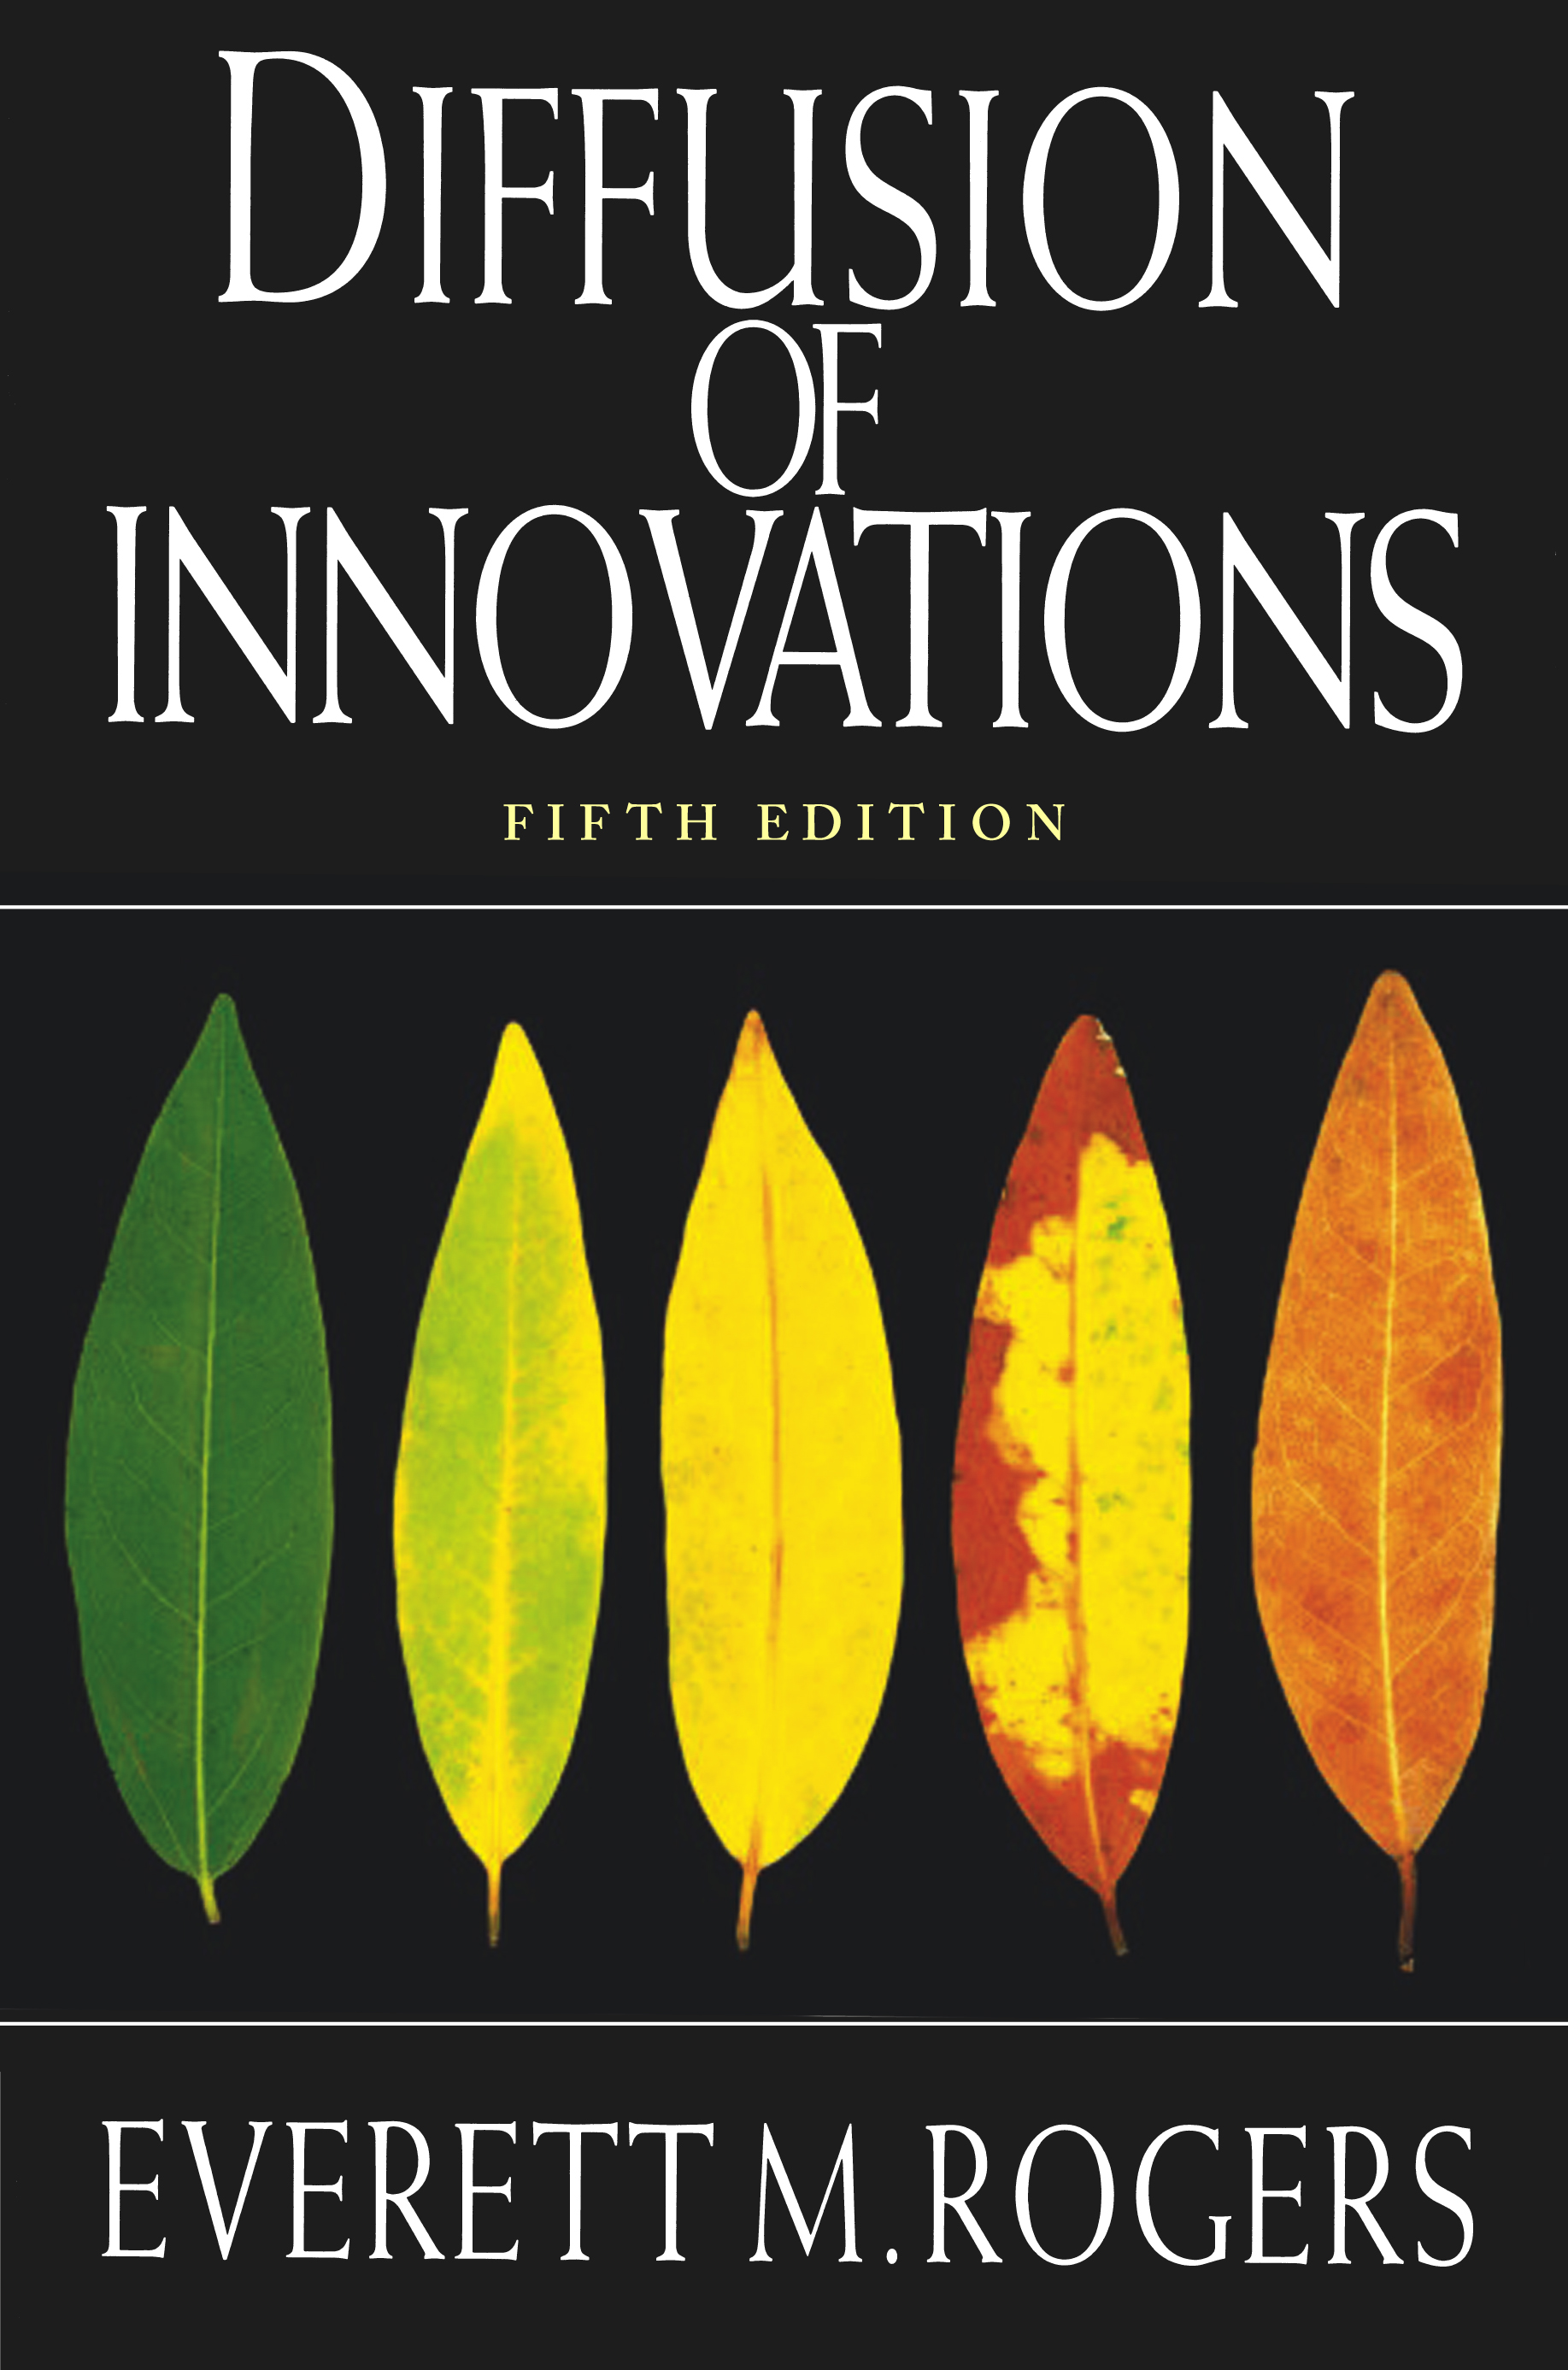 Diffusion of innovations 5th edition book by everett m rogers diffusion of innovations 5th edition book by everett m rogers official publisher page simon schuster fandeluxe